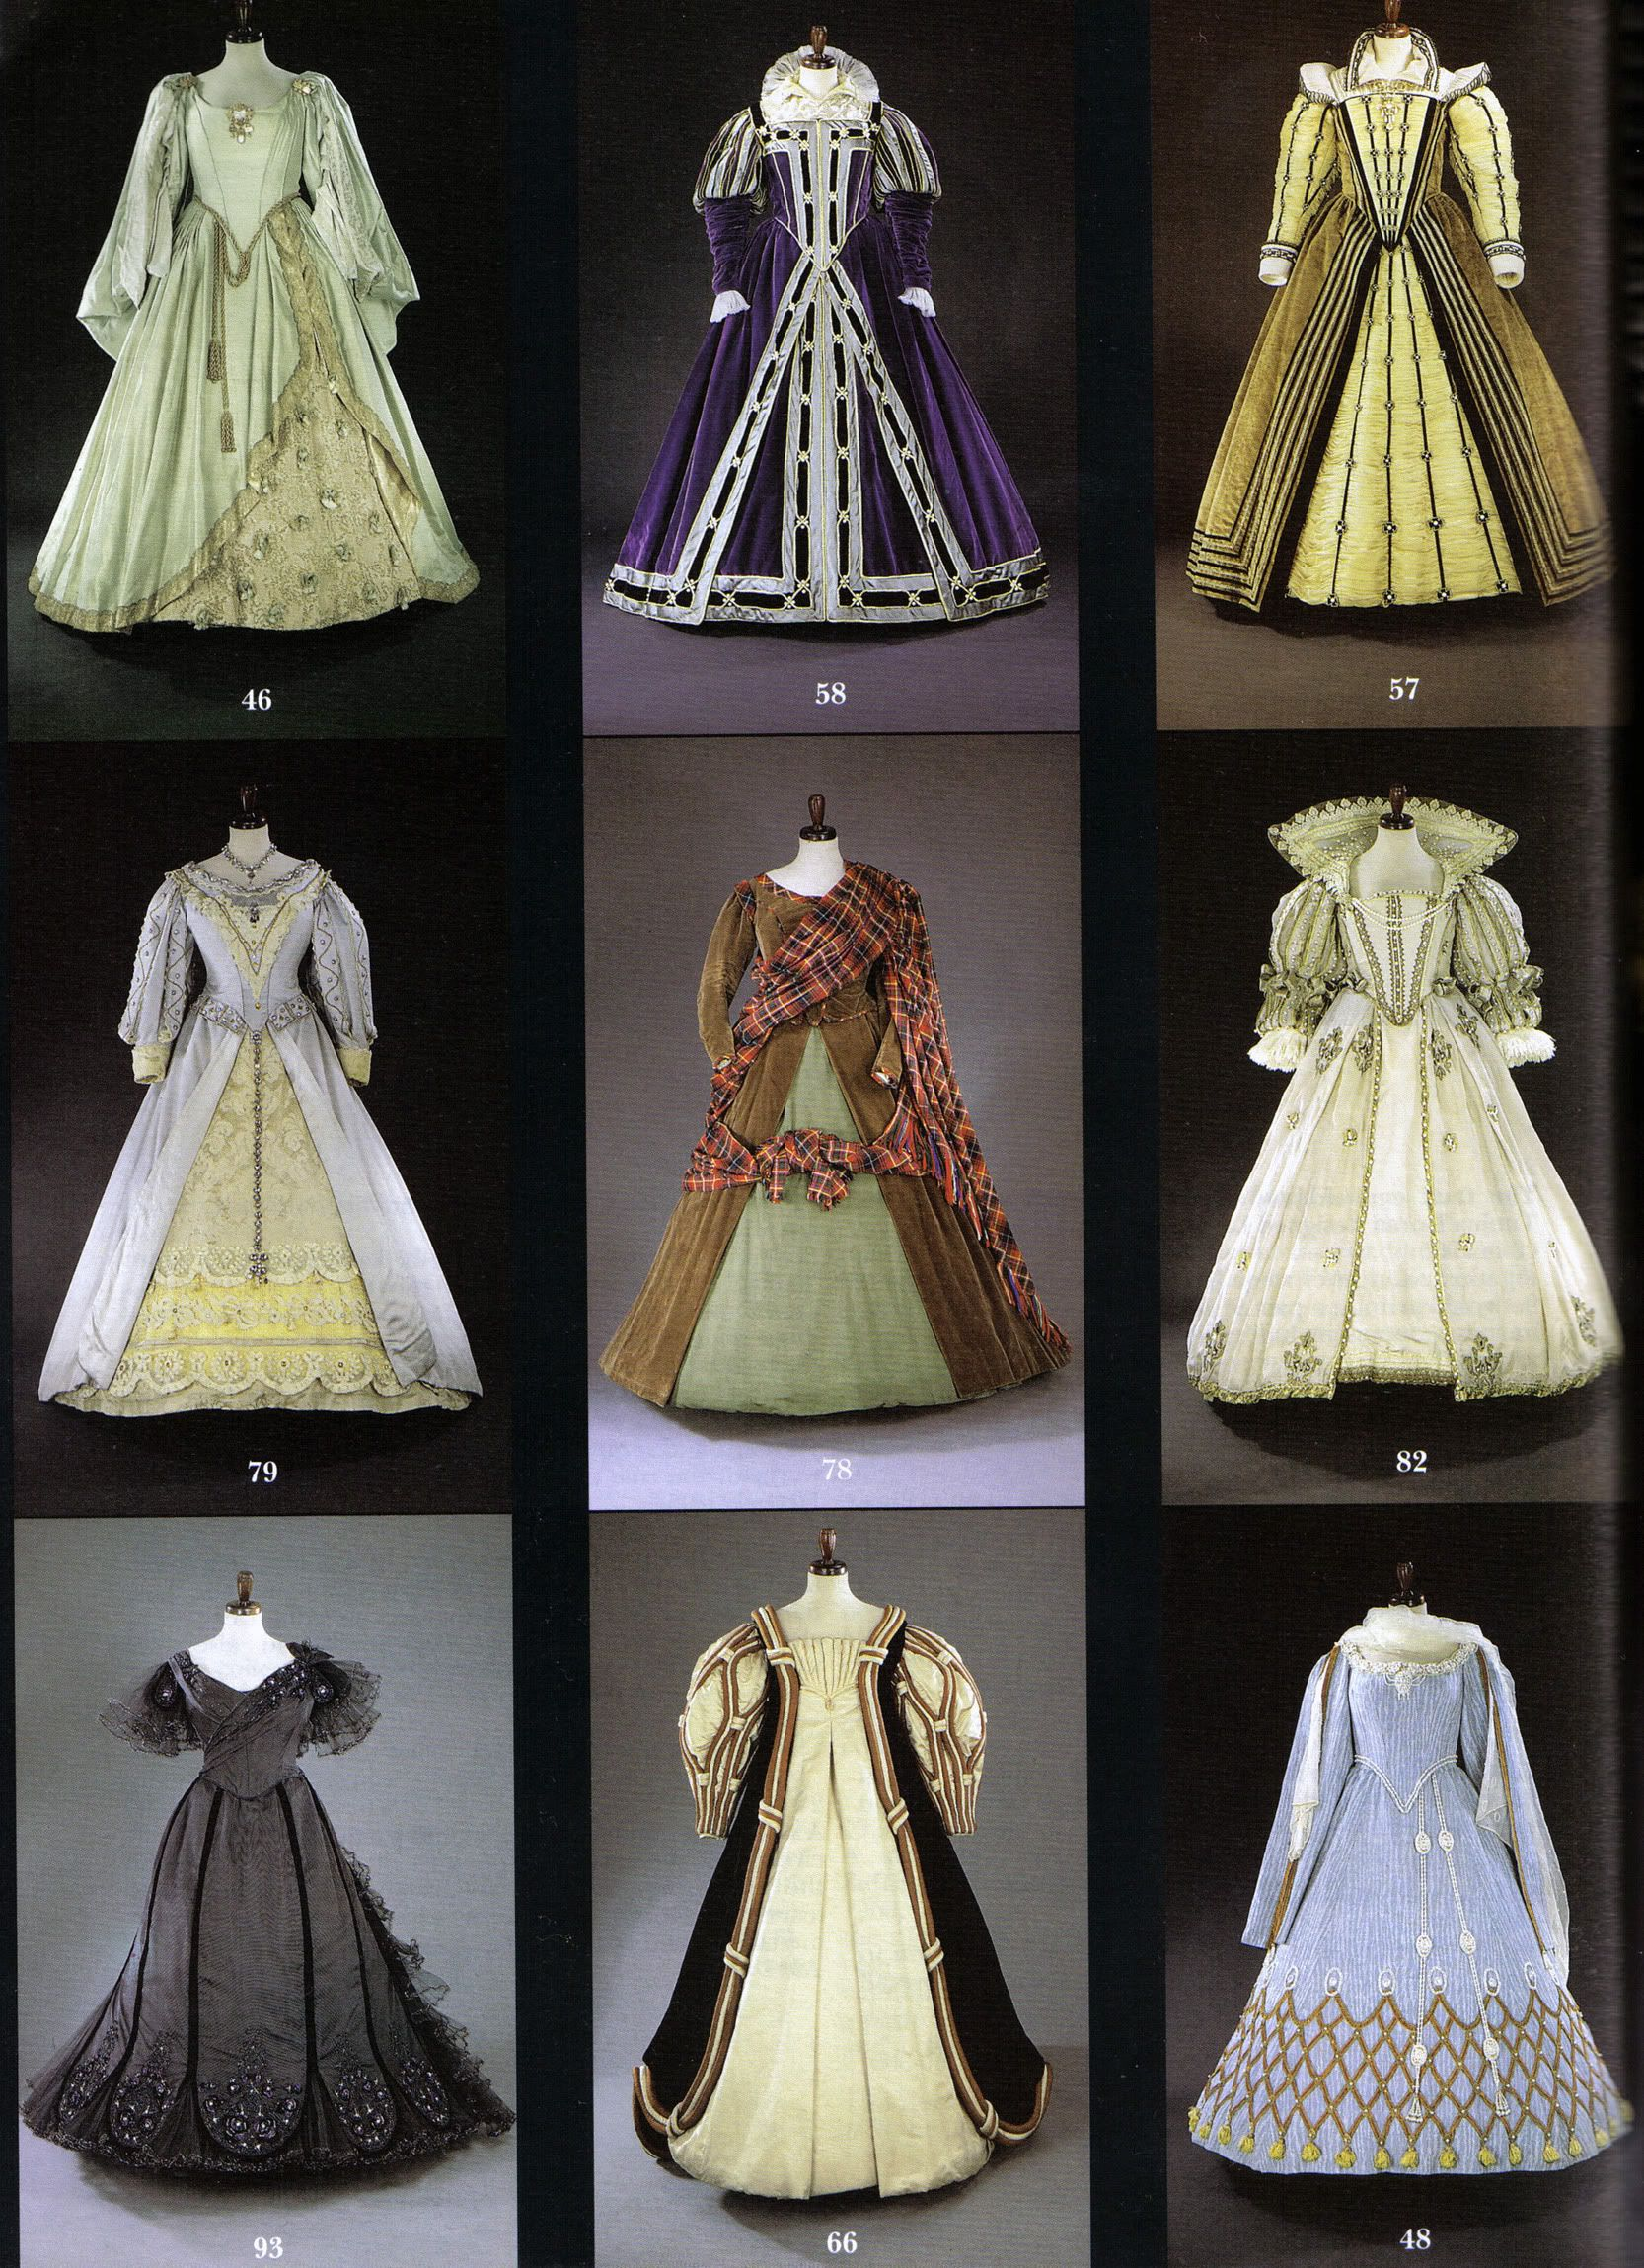 Collection of 16th Century gowns | Historical Fashion | Pinterest ...